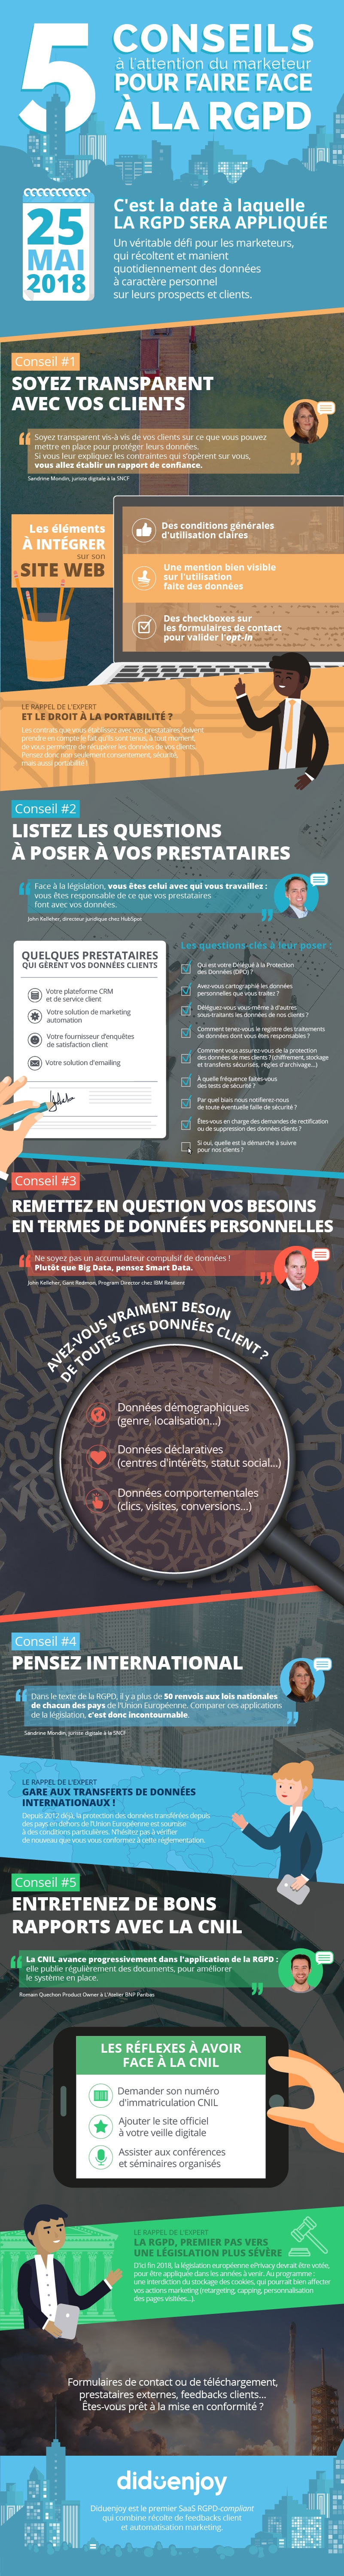 infographie rgpd experts